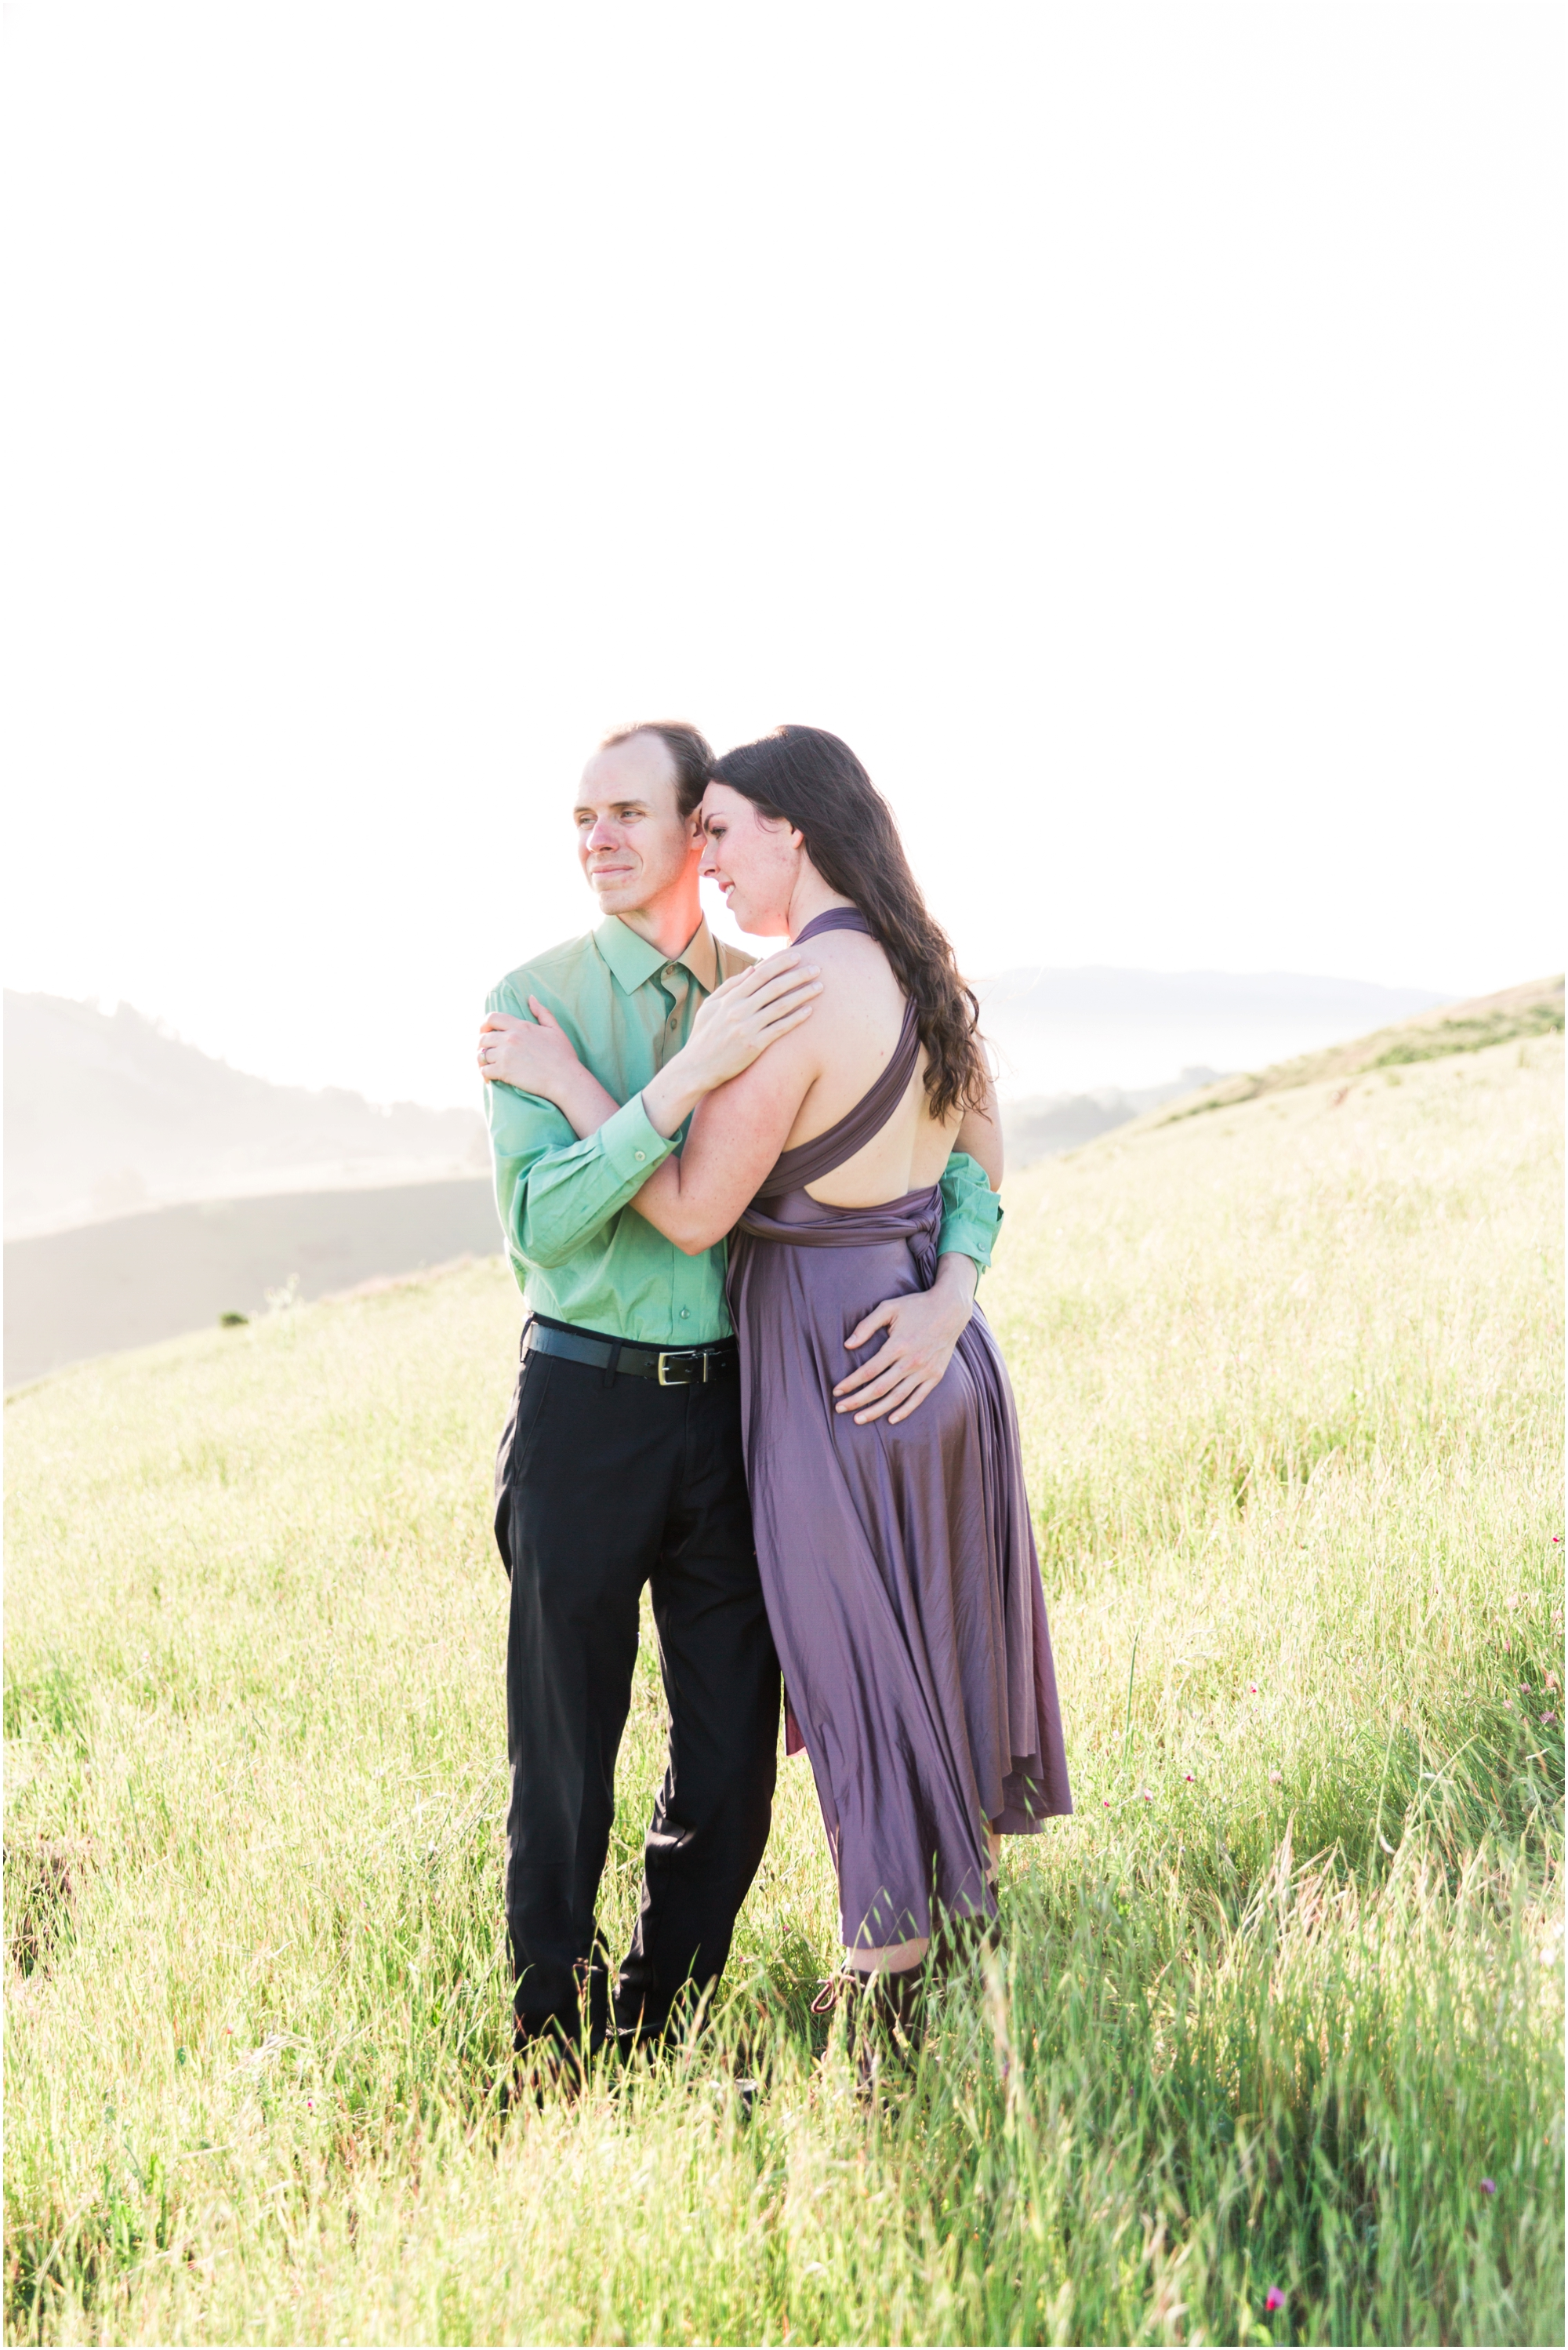 Russian Ridge engagement pictures by Briana Calderon Photography_1617.jpg